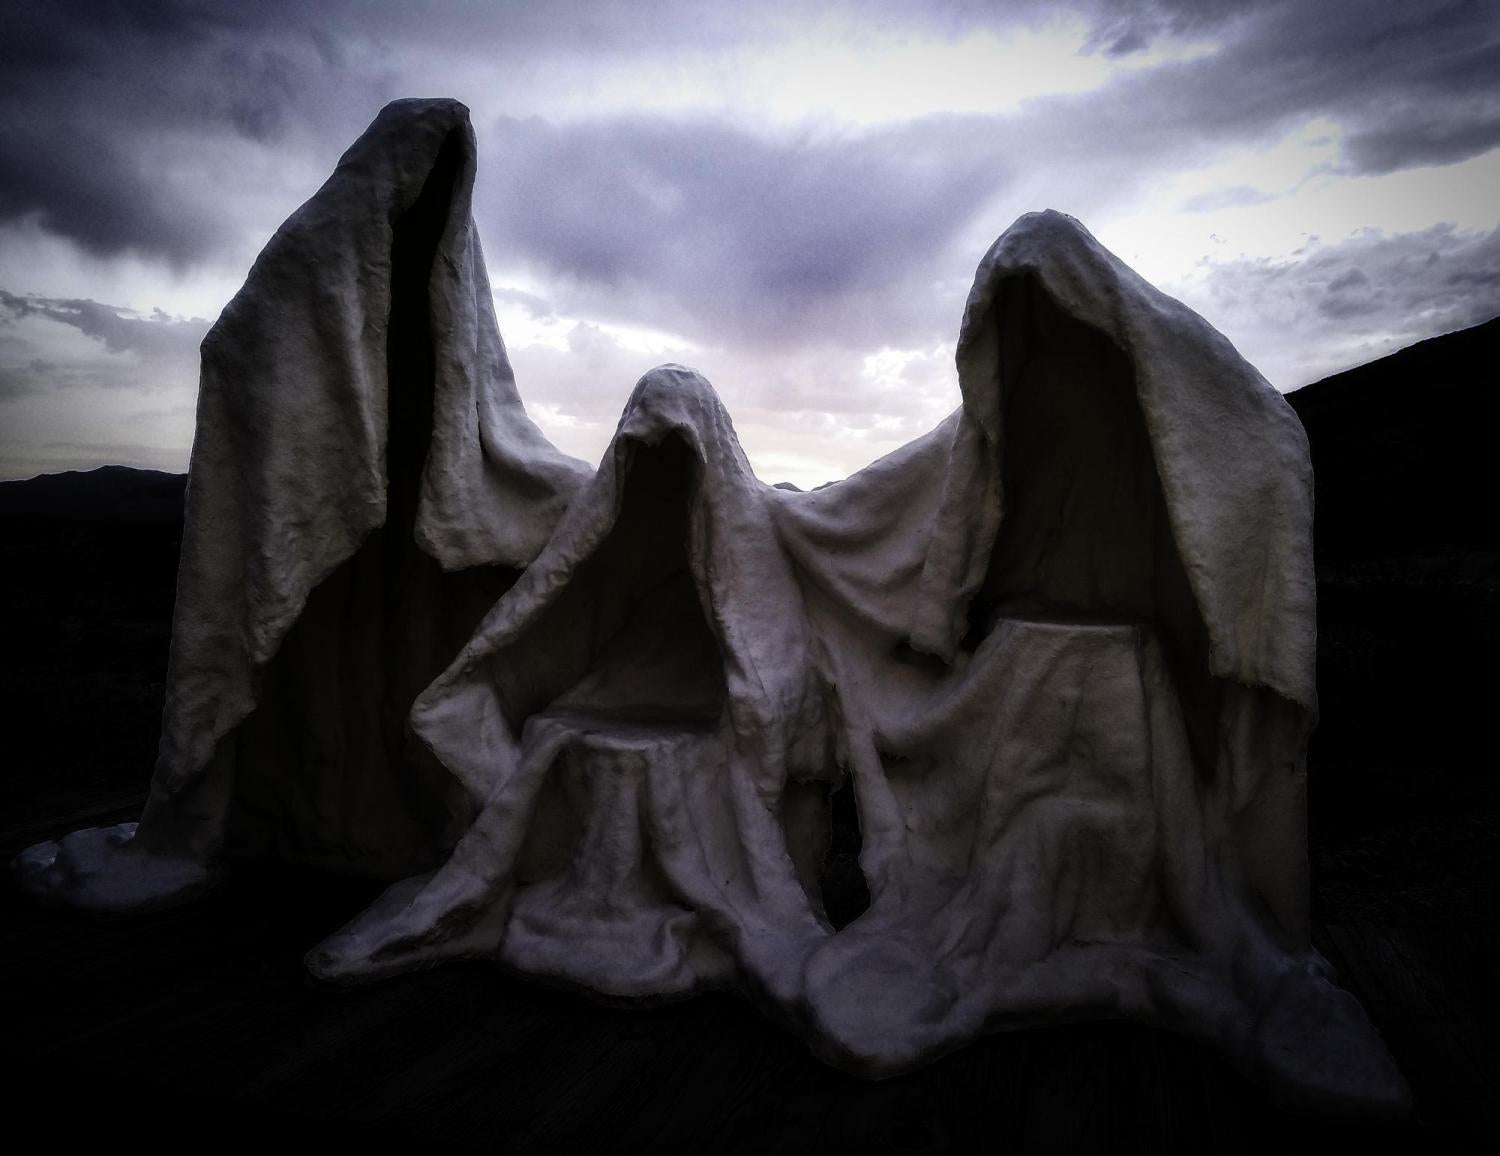 Ghost-like sculptures